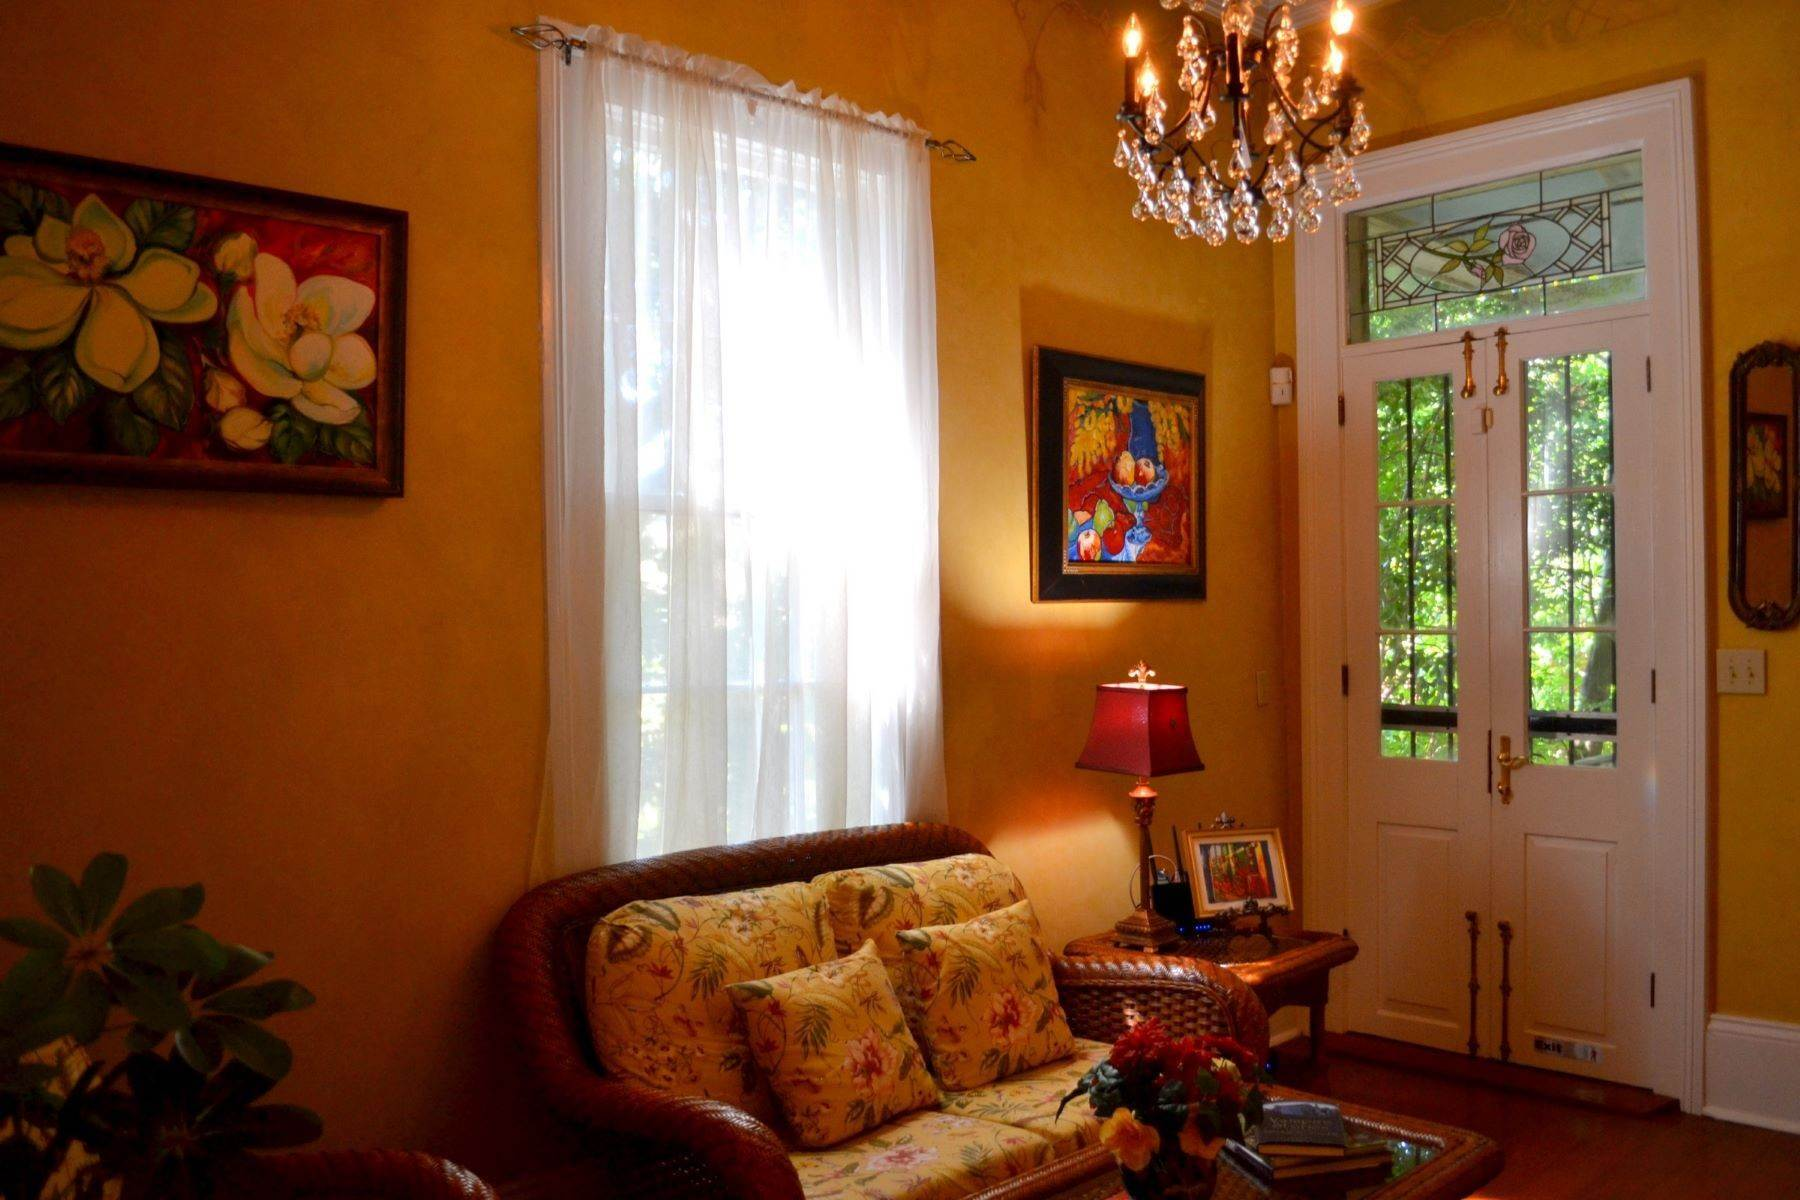 11. Single Family Homes for Sale at 729 Kerlerec Street 729 Kerlerec St New Orleans, Louisiana 70116 United States